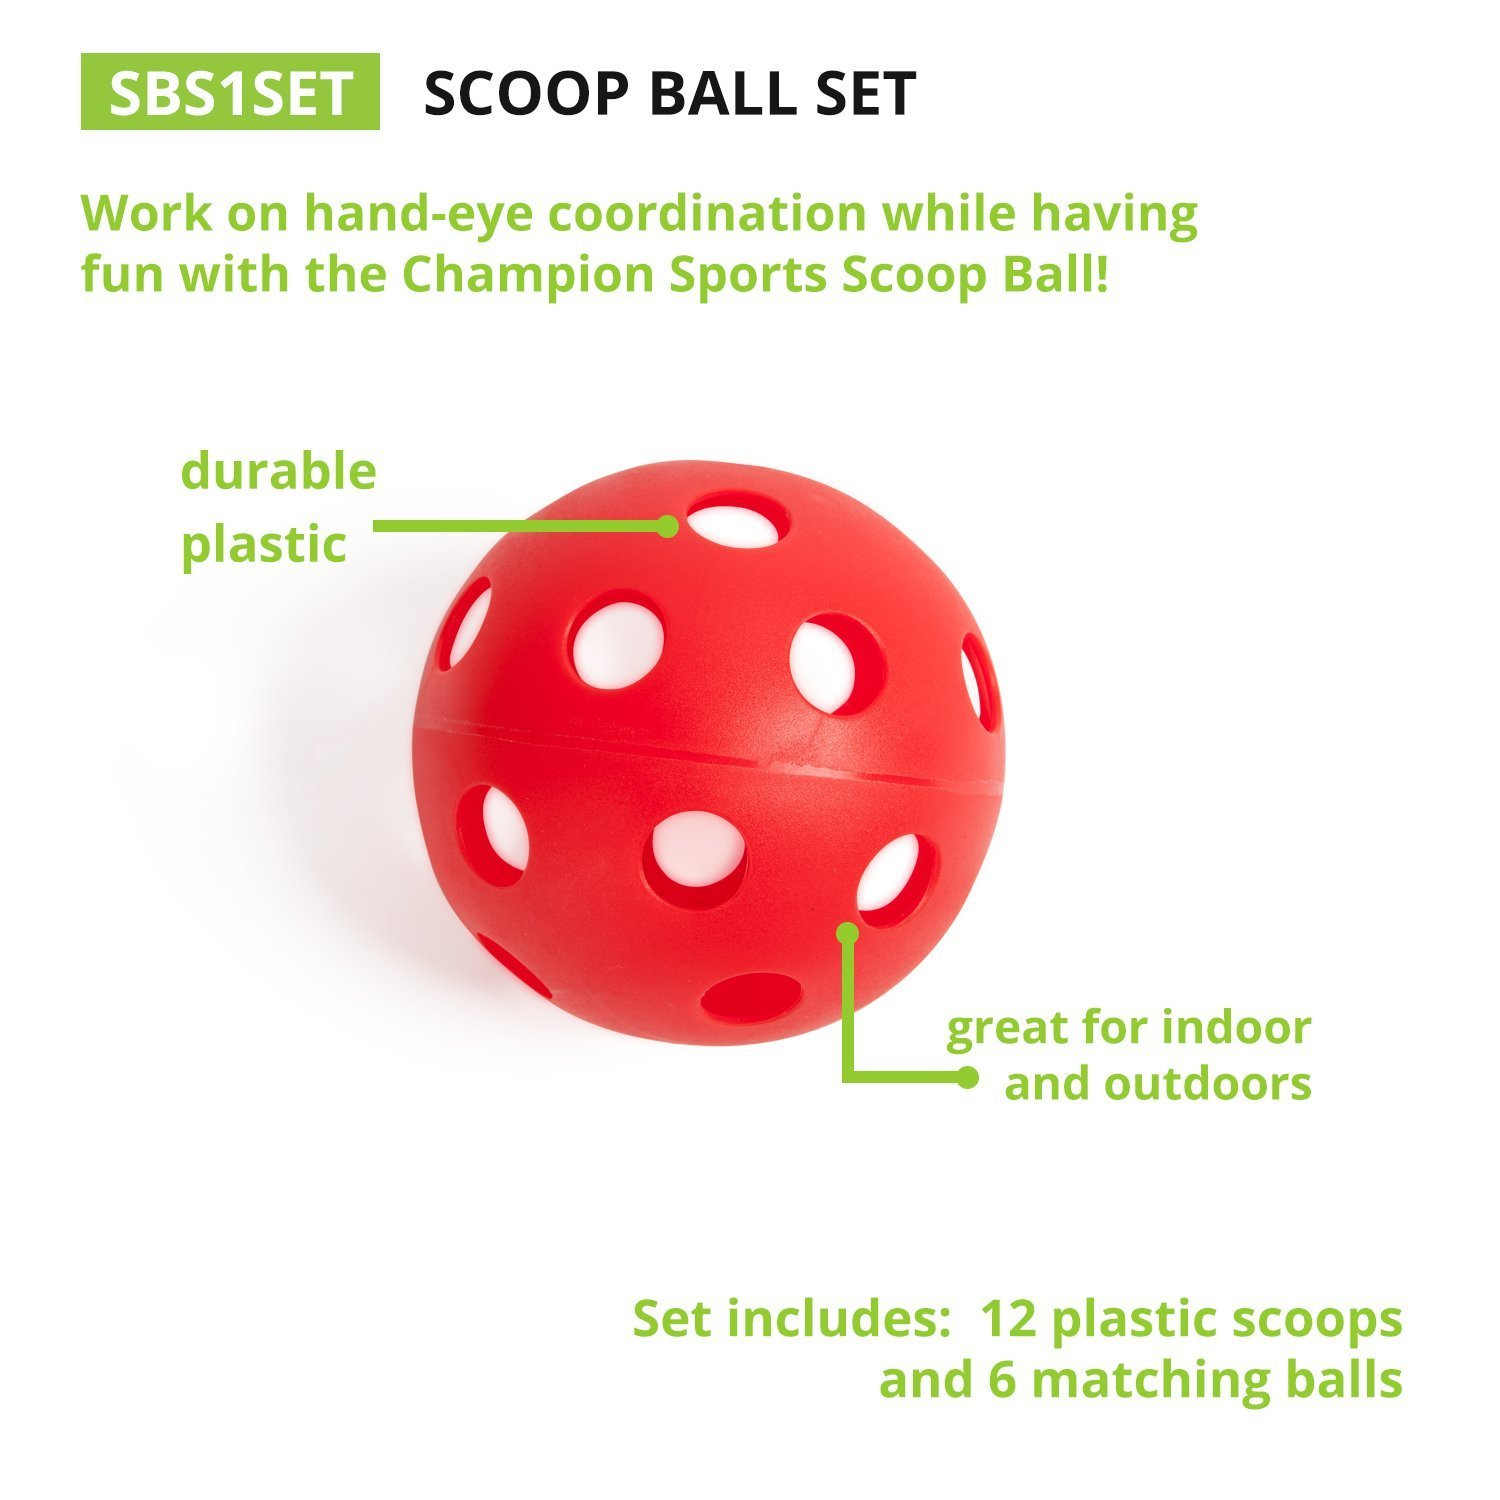 Champion Sports. Scoop Ball Set: Classic Outdoor Lawn Party & Kids Game in 6 Assorted Colors (Limited Edition) by Champion Sports. (Image #2)